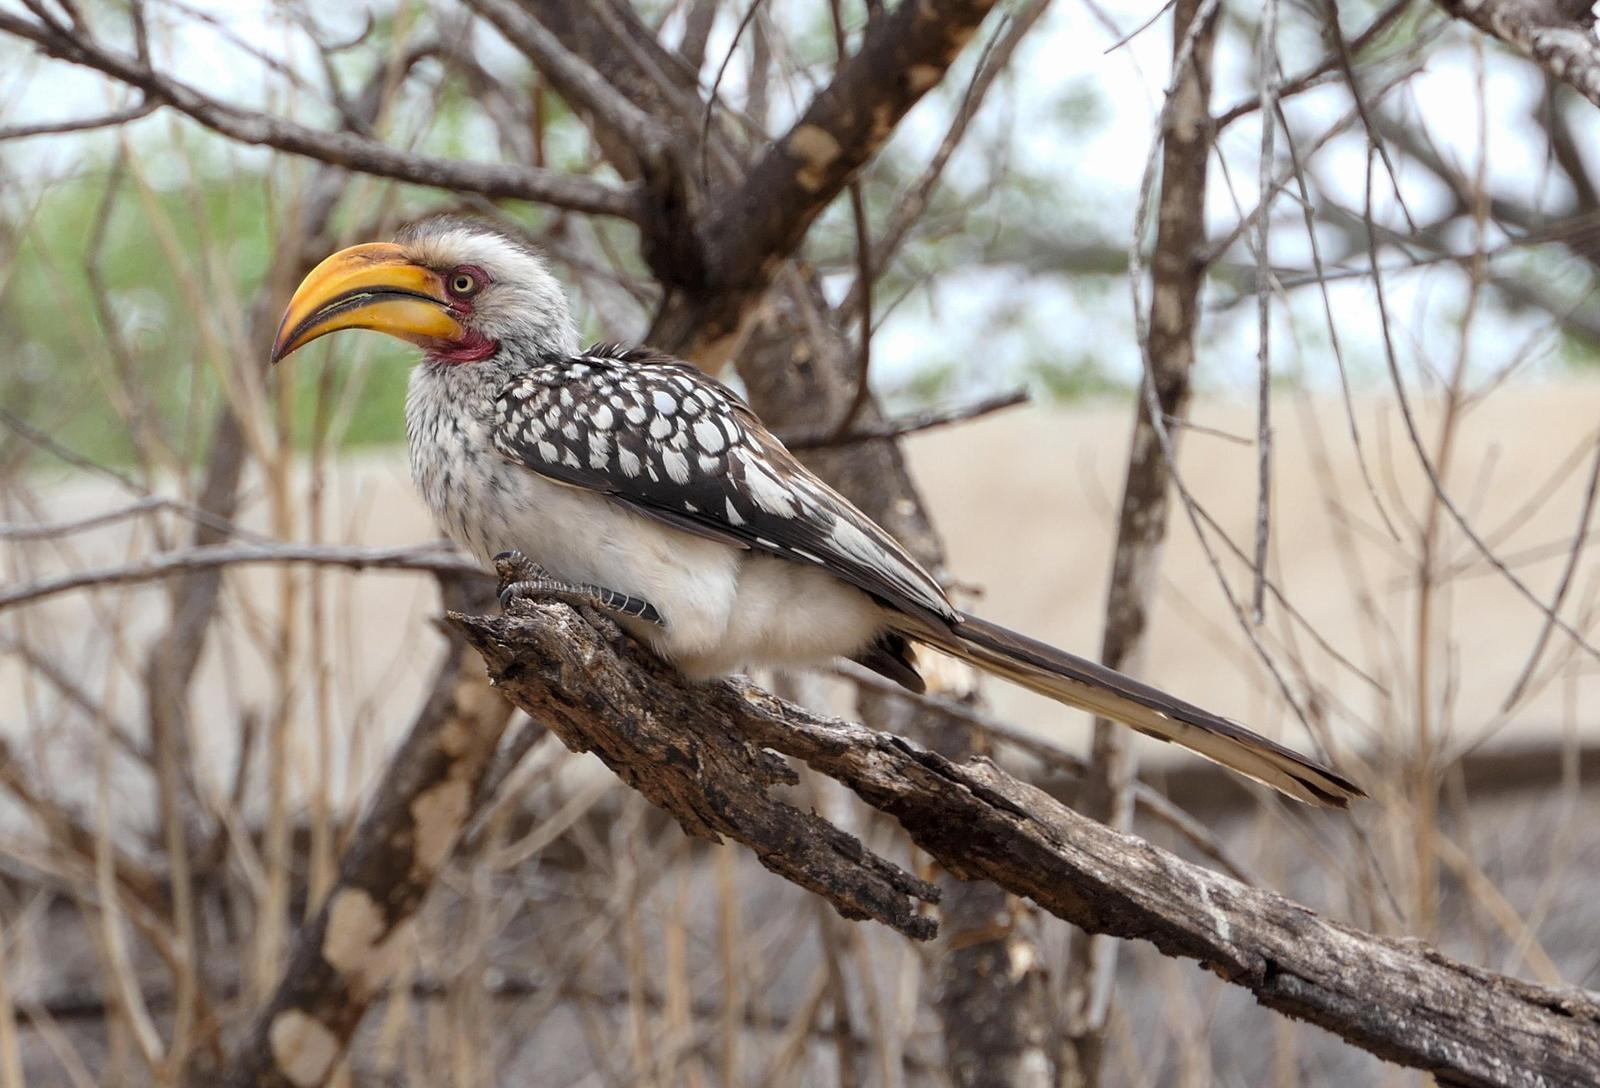 Southern Yellow-billed Hornbill Photo by Randy Siebert